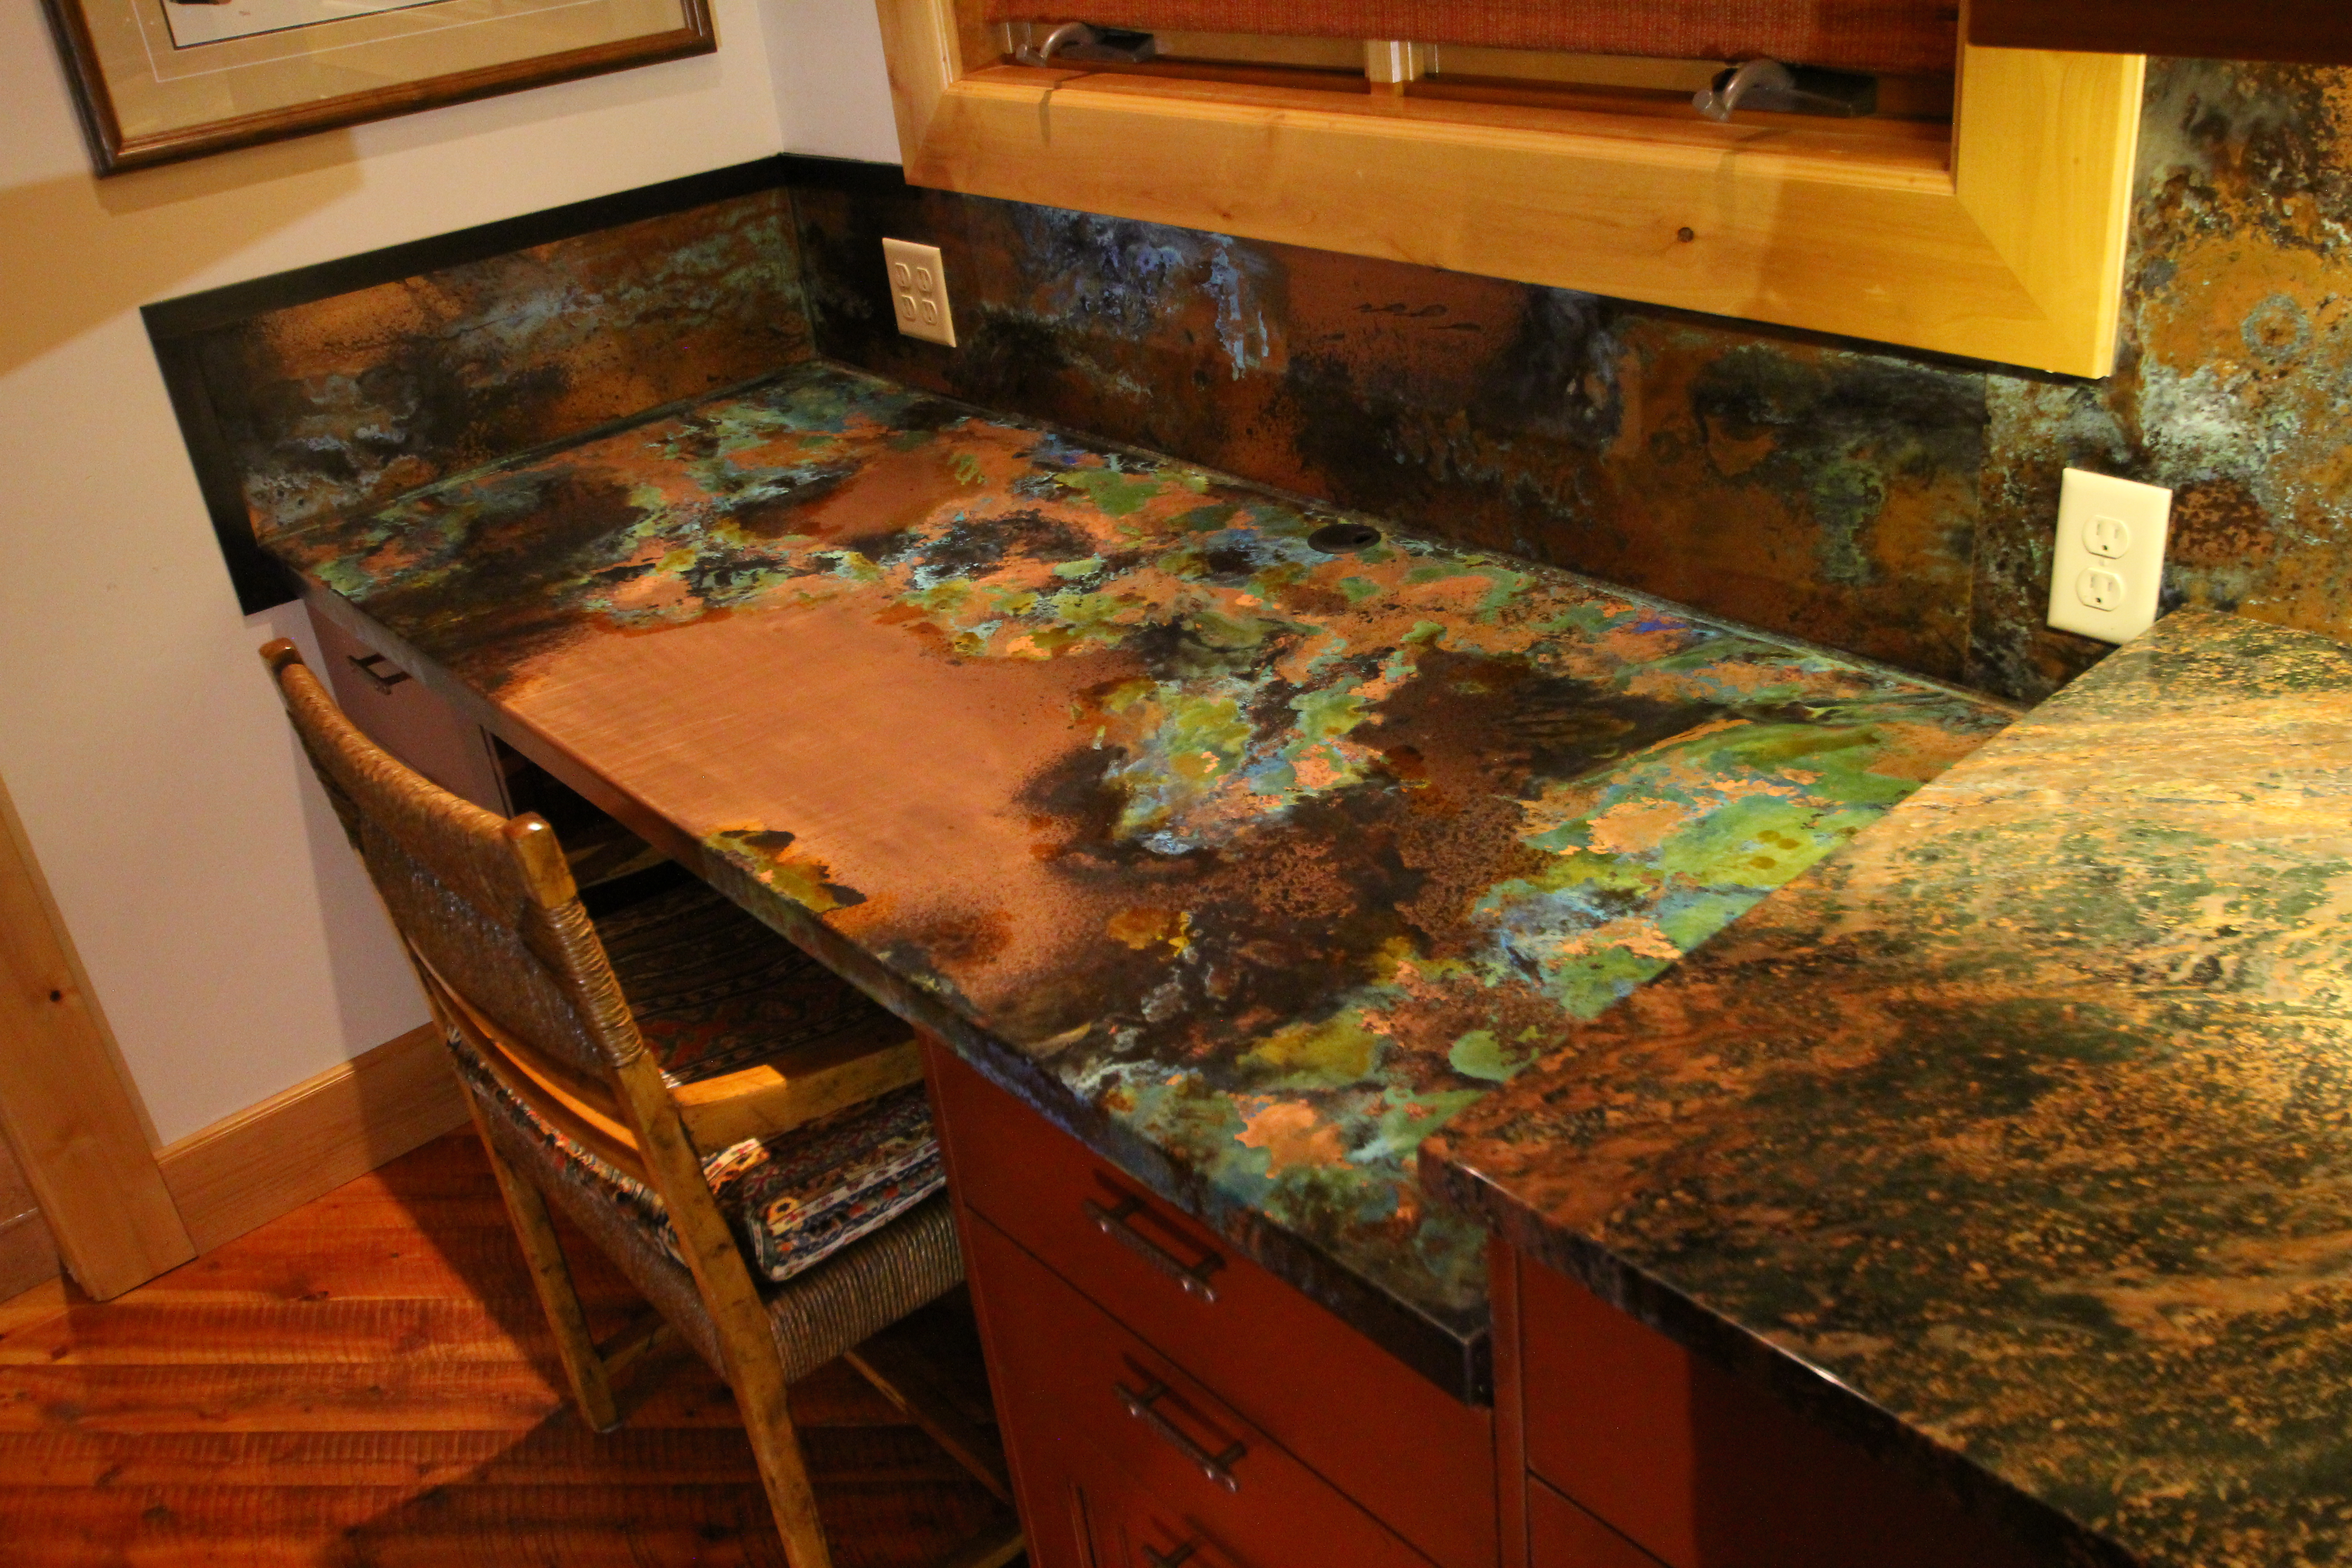 patinad copper counter